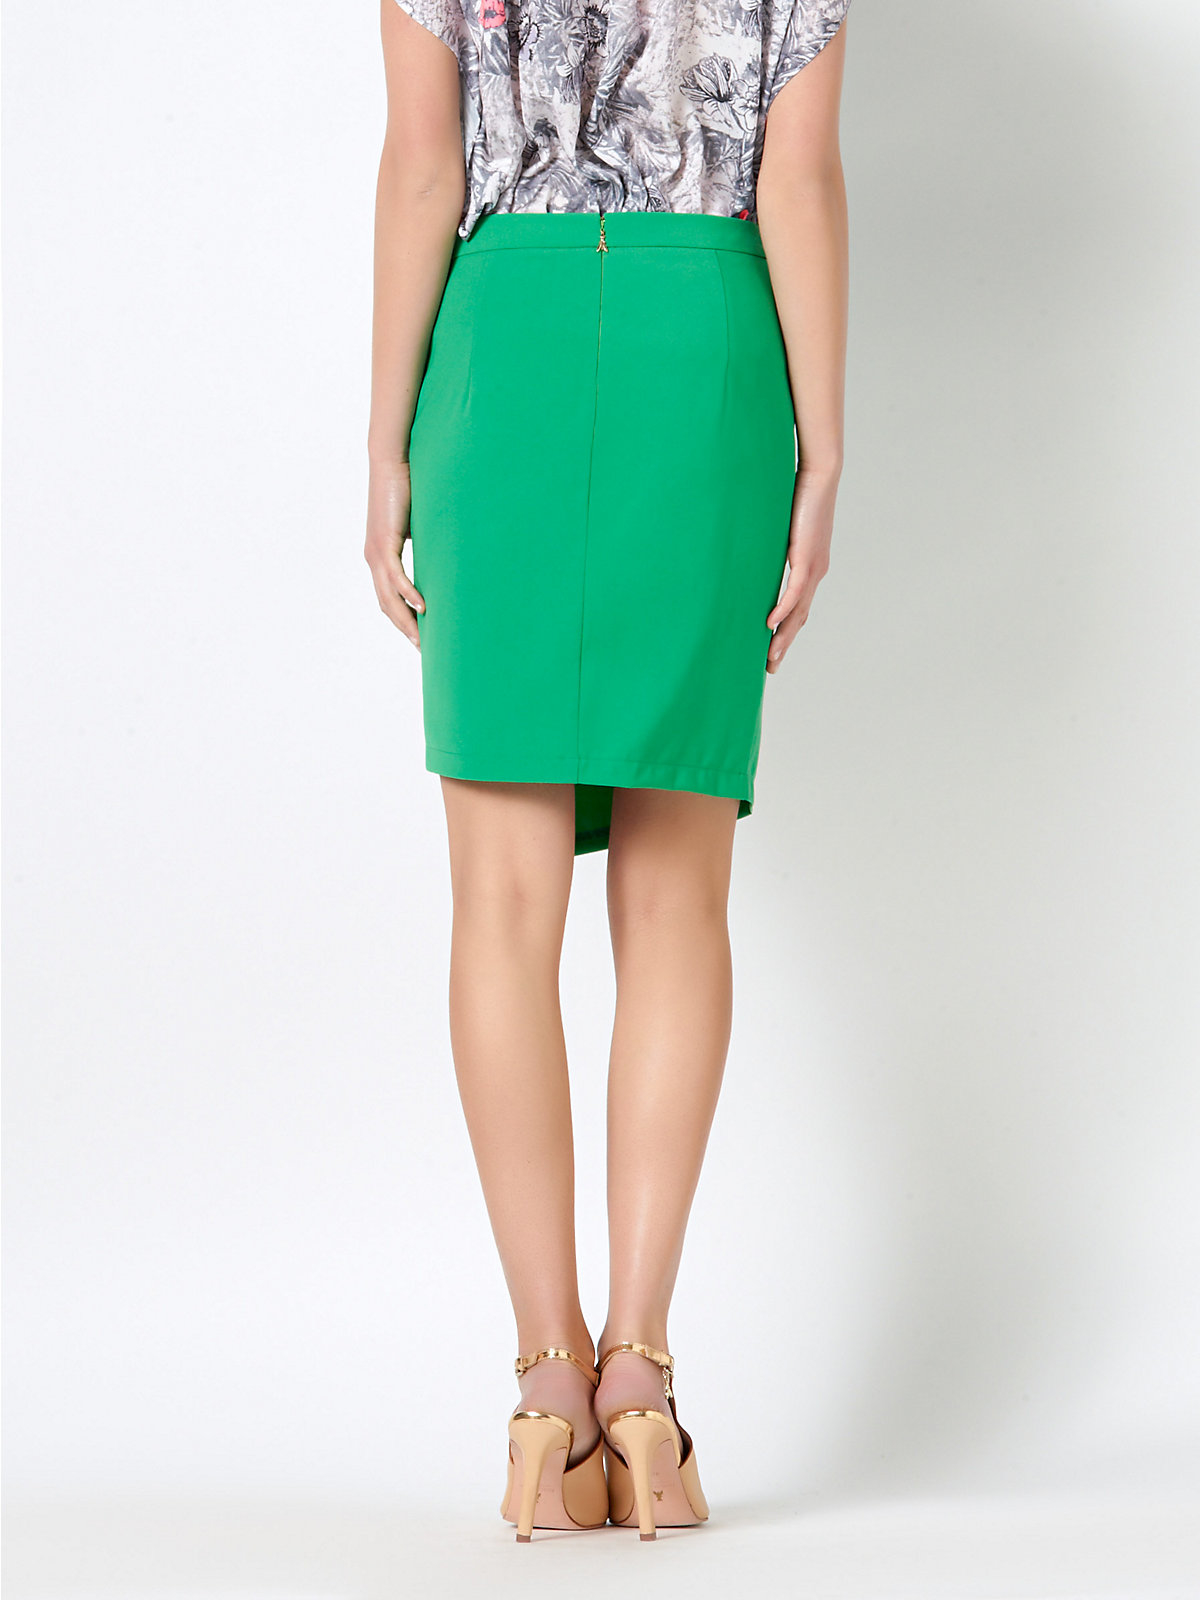 patrizia pepe pencil skirt in stretch fabric in green lyst